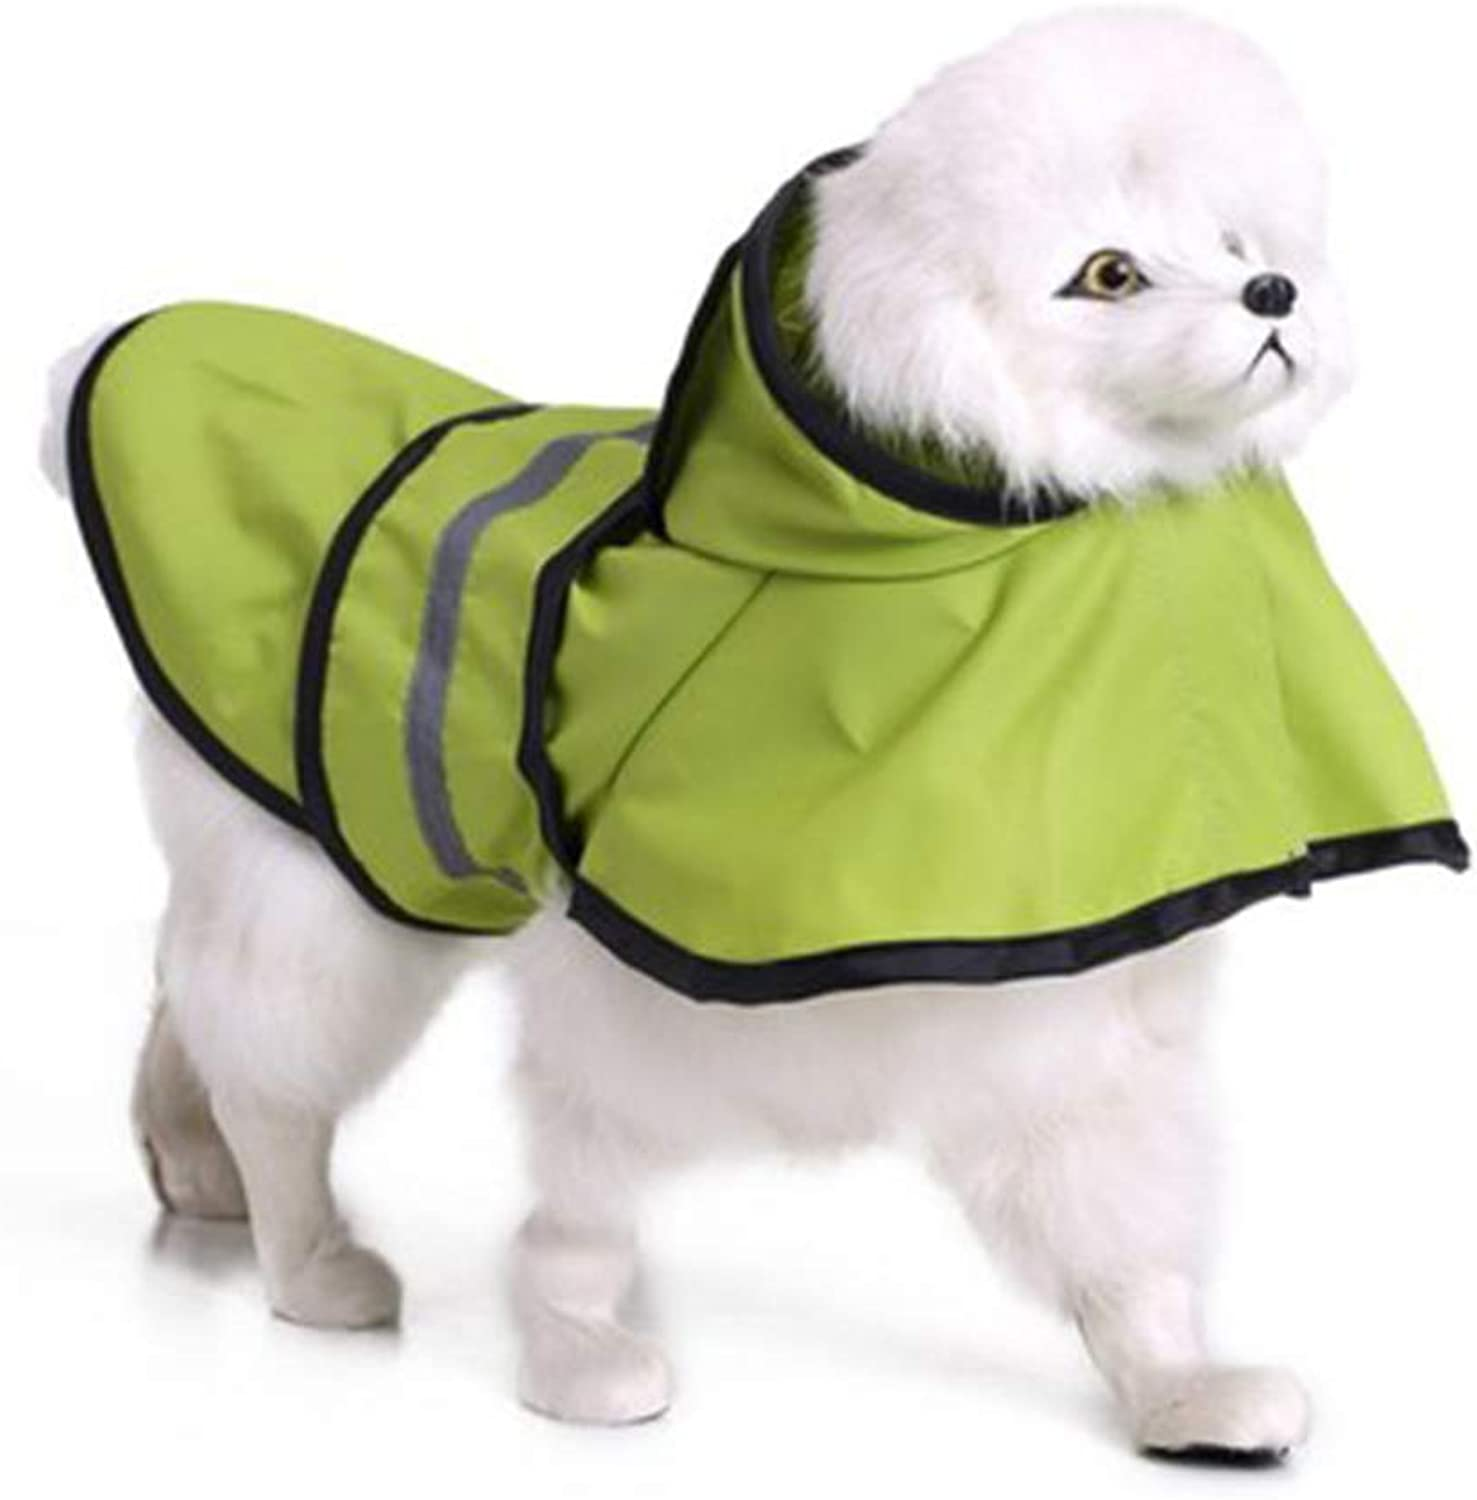 Fashion Reflective Stripes Raincoat Pet Rainy Days Slicker Waterproof Clothes Waterproof Ultra Light Breathable Raincoat Rain Jacket for Small and Medium Dogs,L